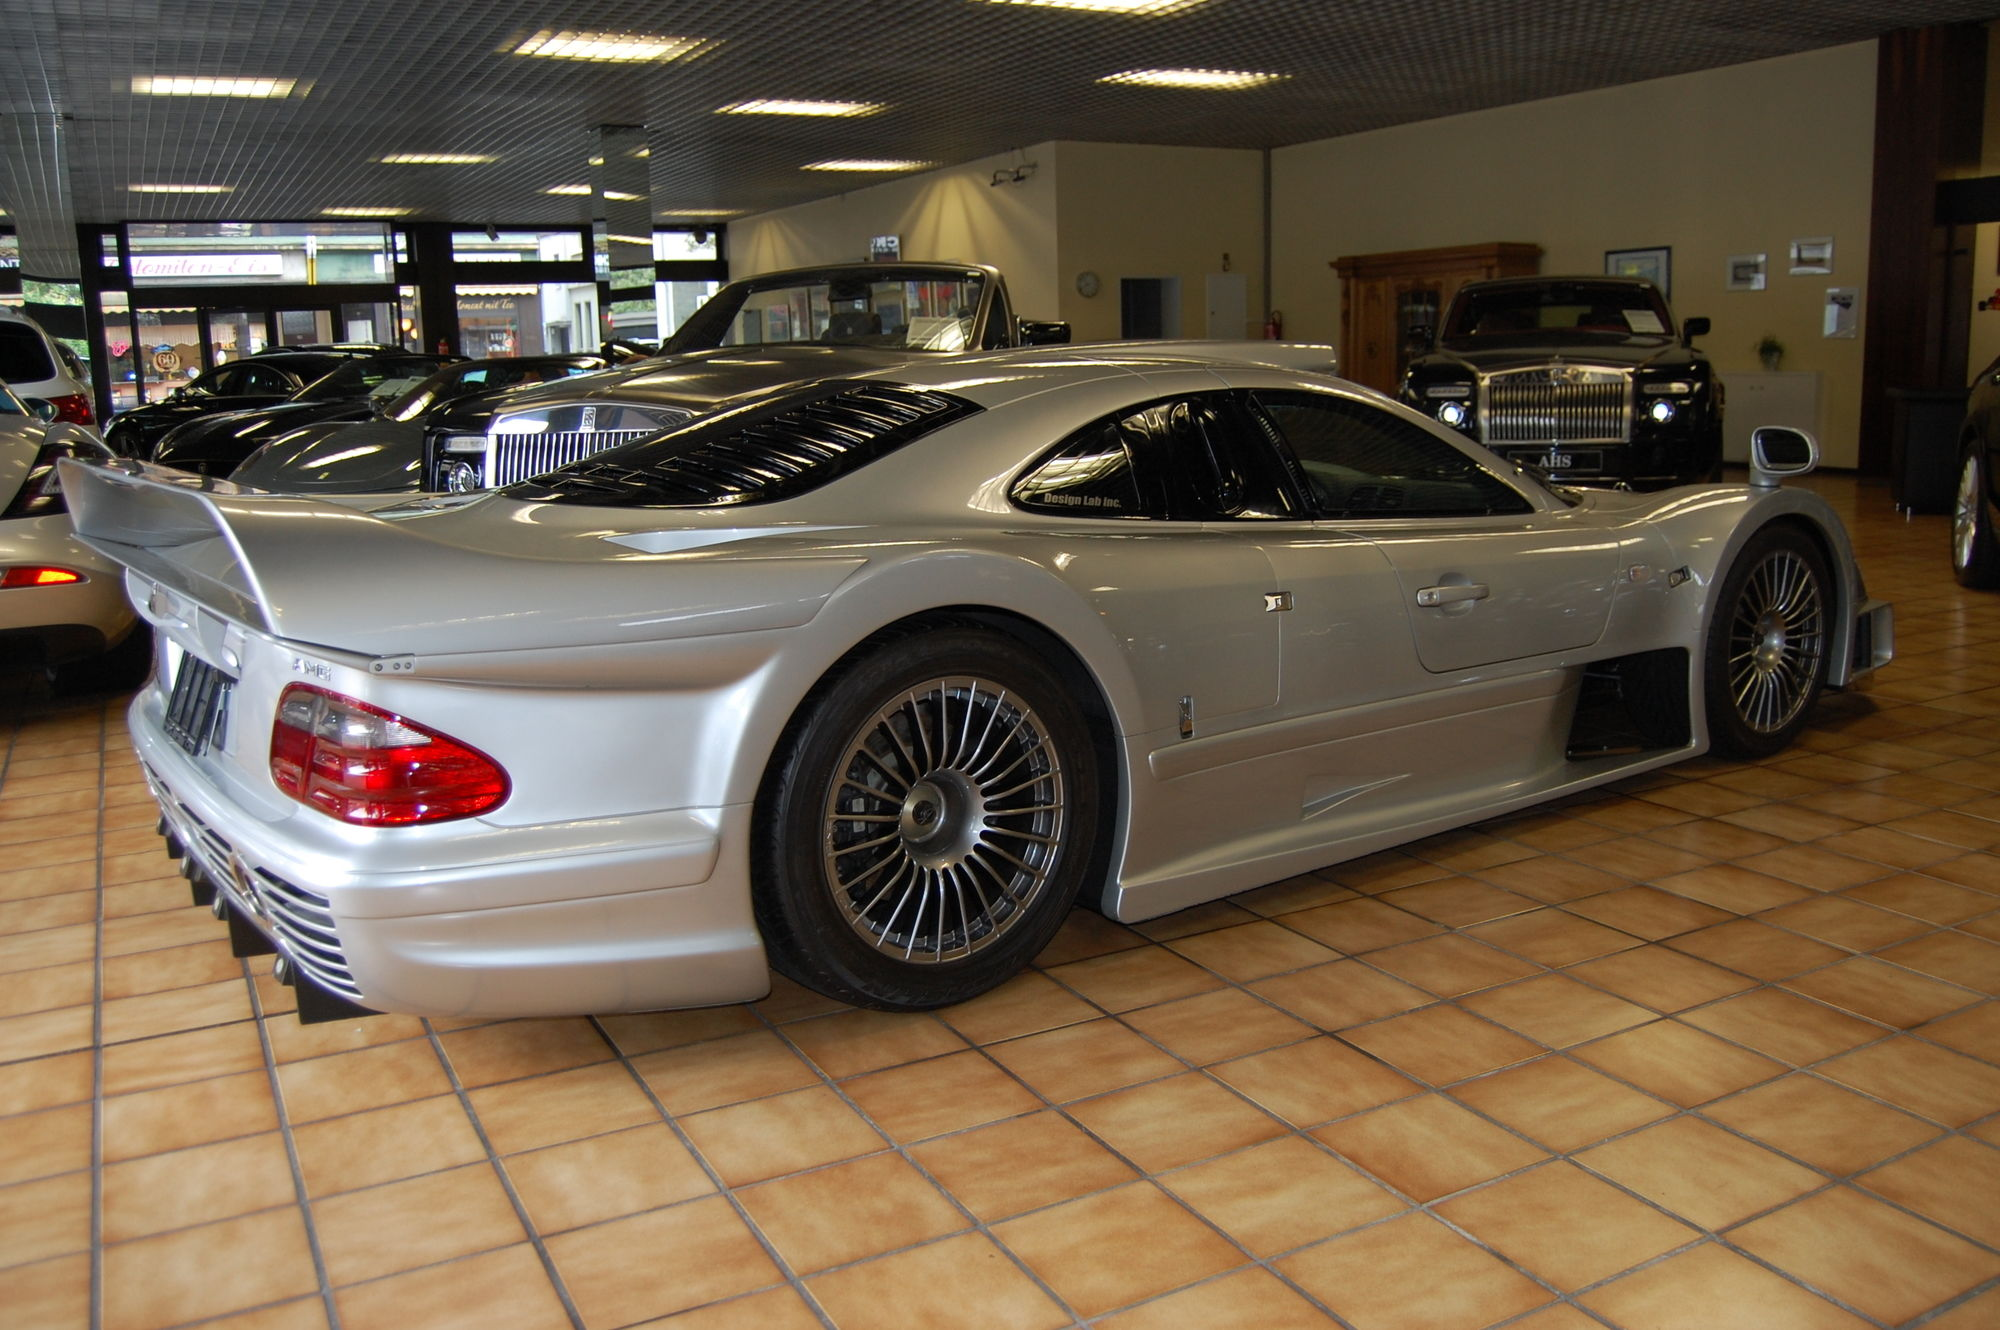 fascinating history of the mercedes clk gtr including. Black Bedroom Furniture Sets. Home Design Ideas